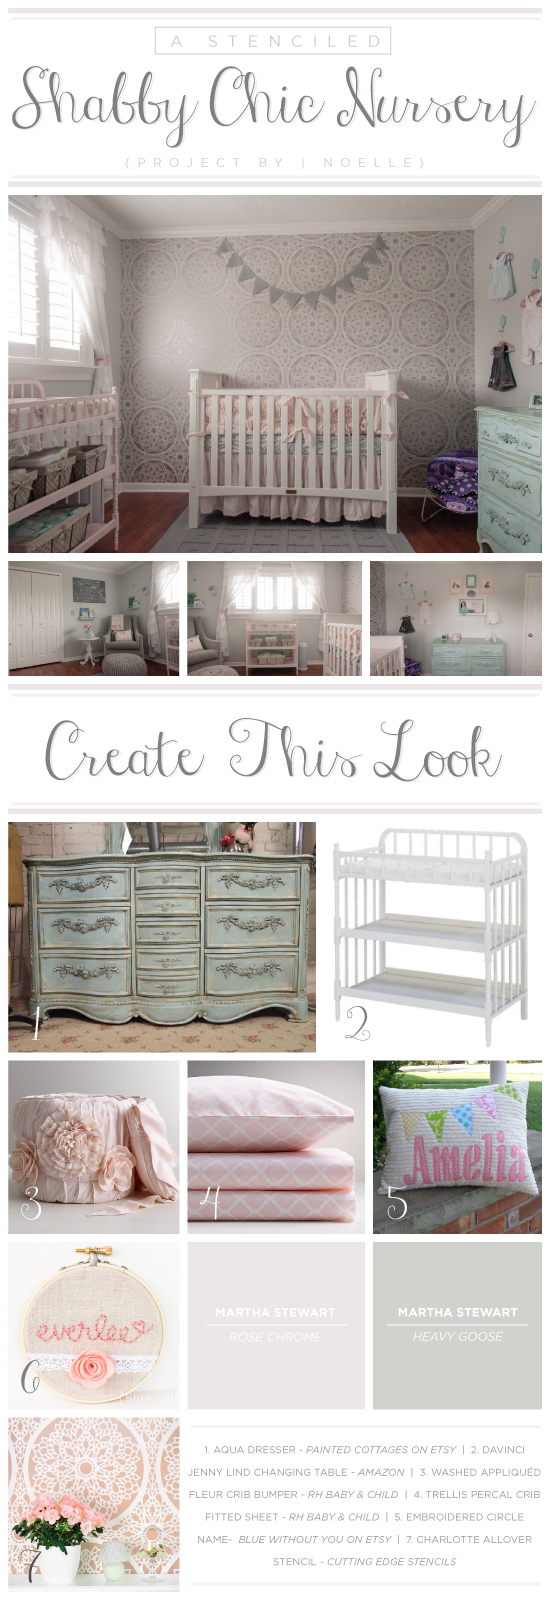 A stenciled shabby chic nursery using the lace like Charlotte Allover pattern on an accent wall. http://www.cuttingedgestencils.com/charlotte-allover-stencil-pattern.html